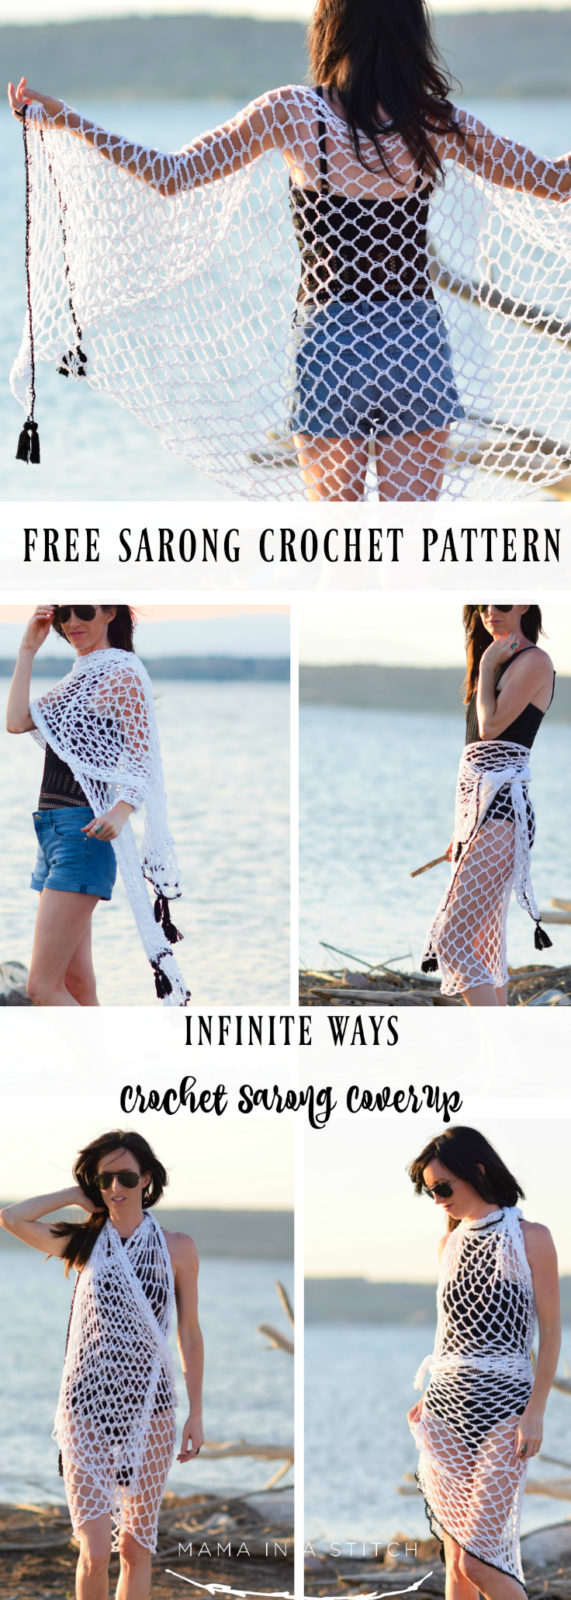 Crochet Cover Up Pattern Infinite Ways Sarong Mama In A Stitch